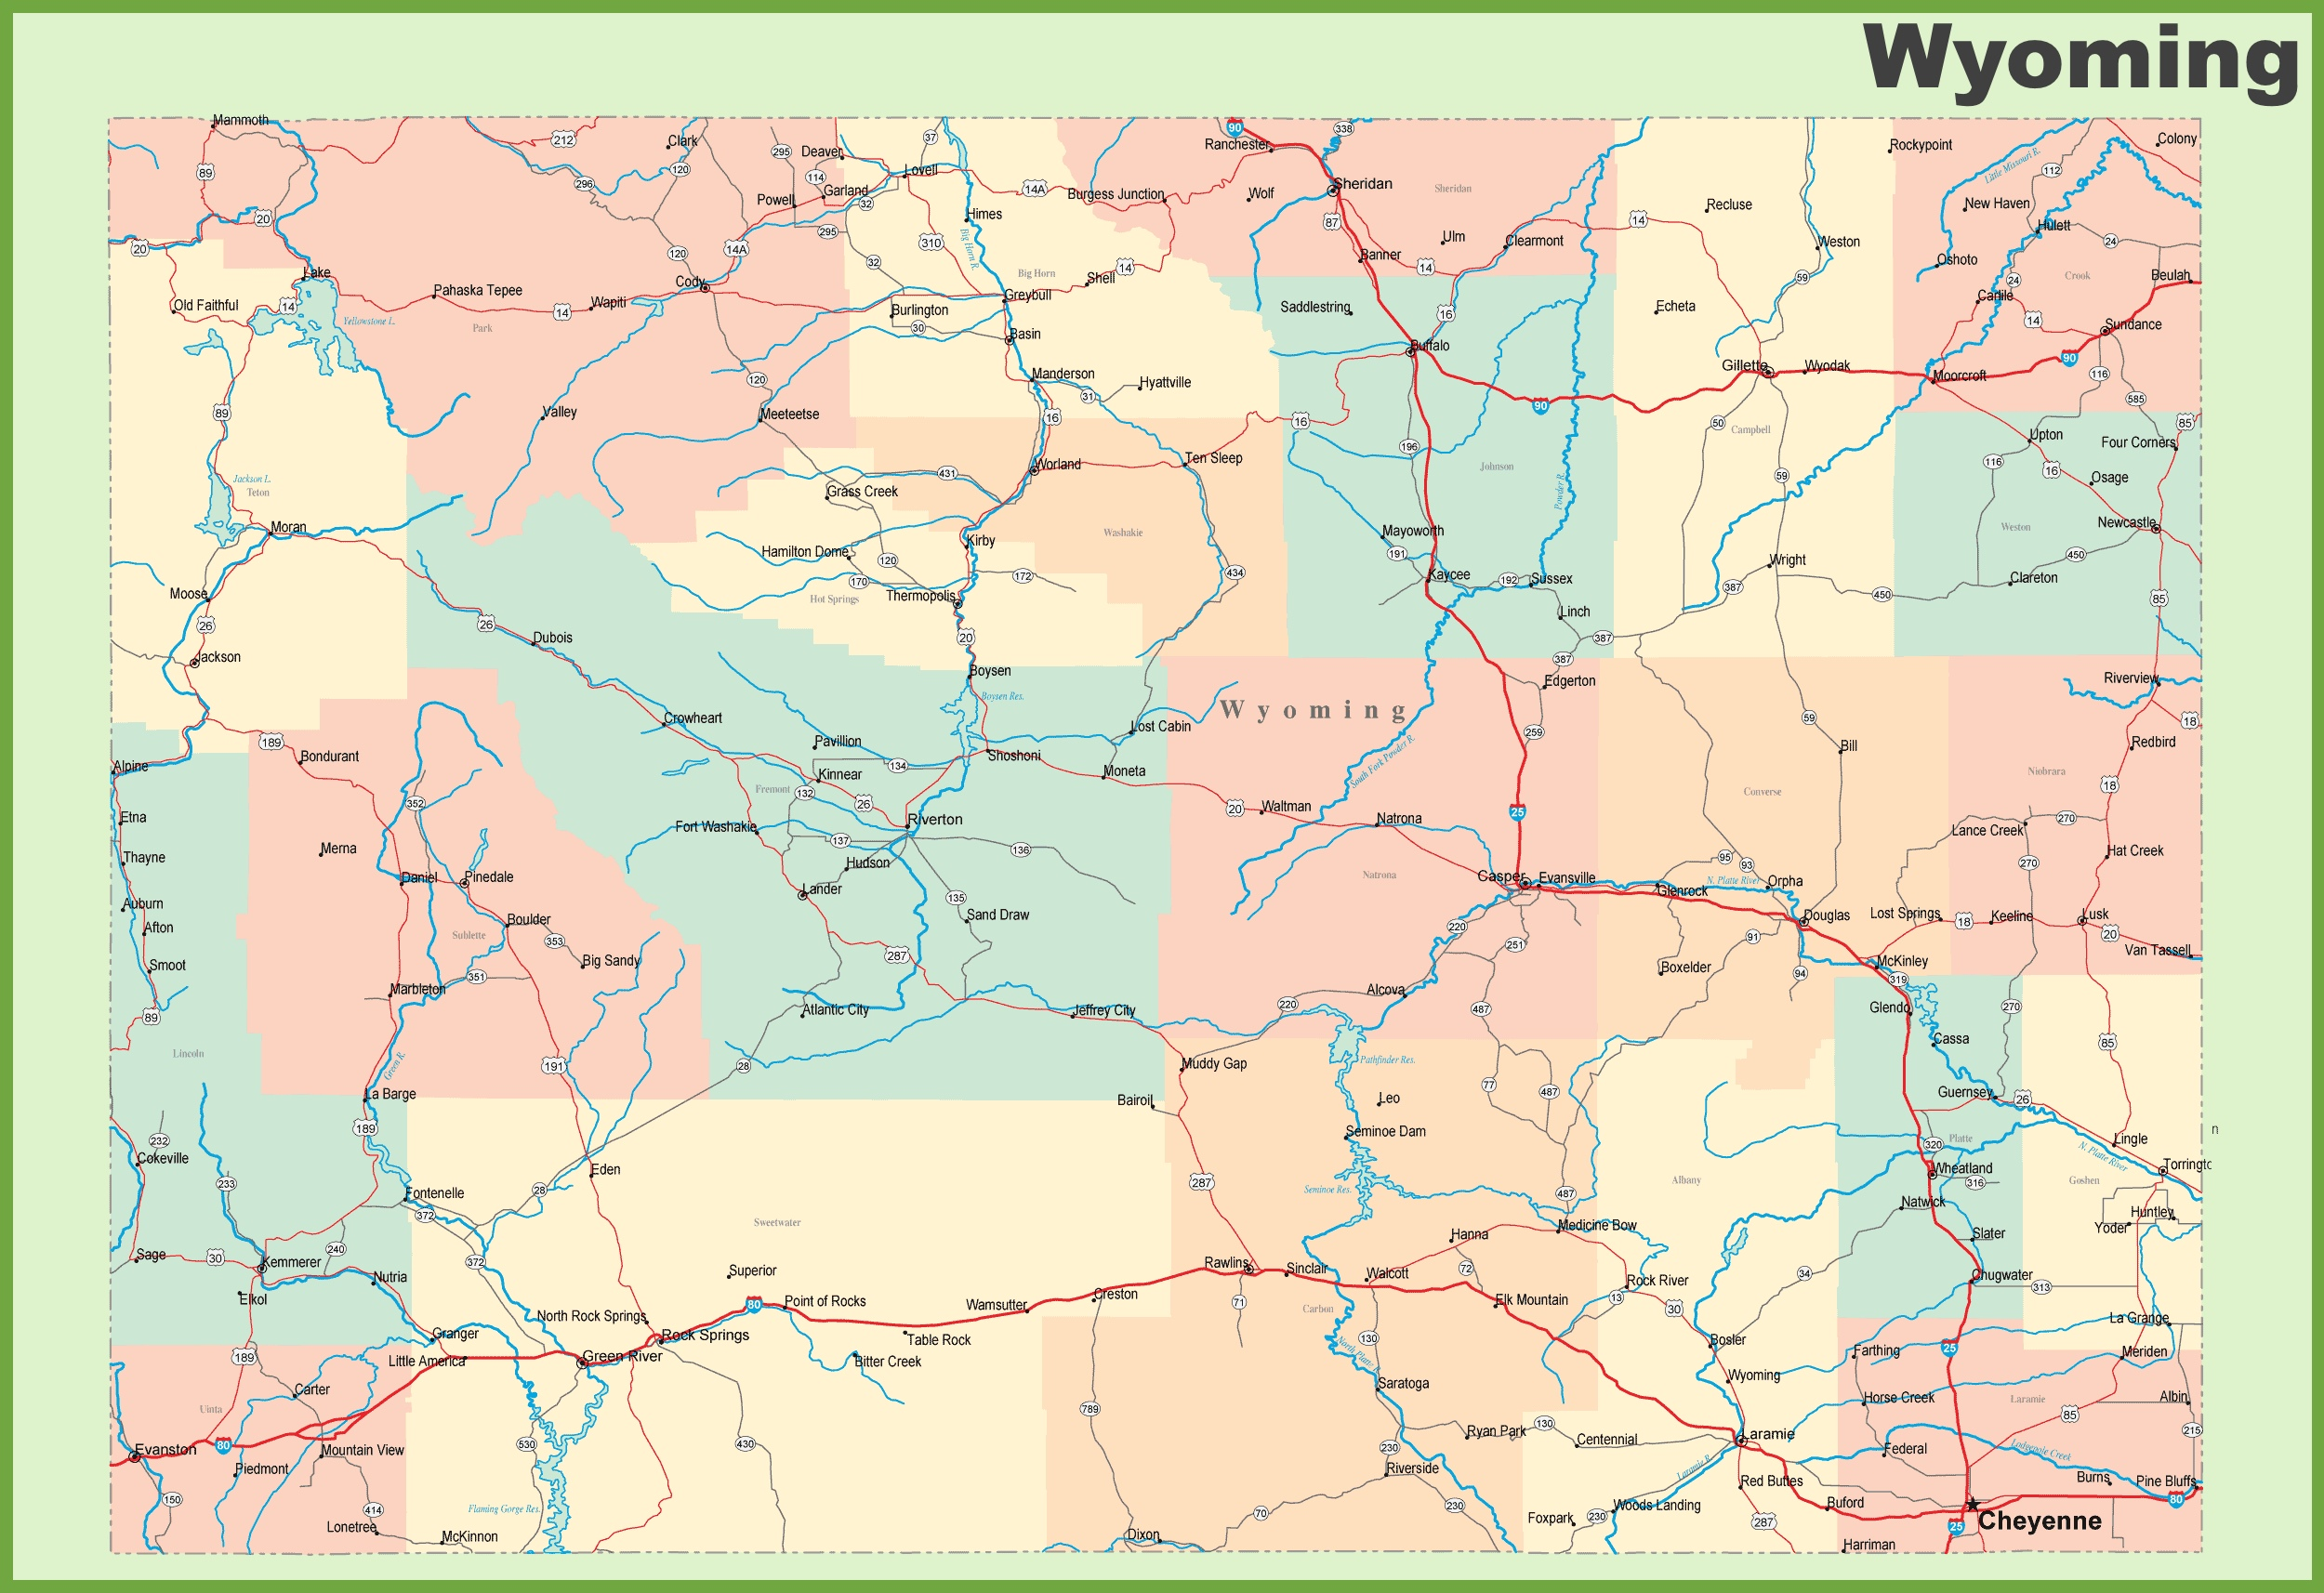 Road map of Wyoming with cities